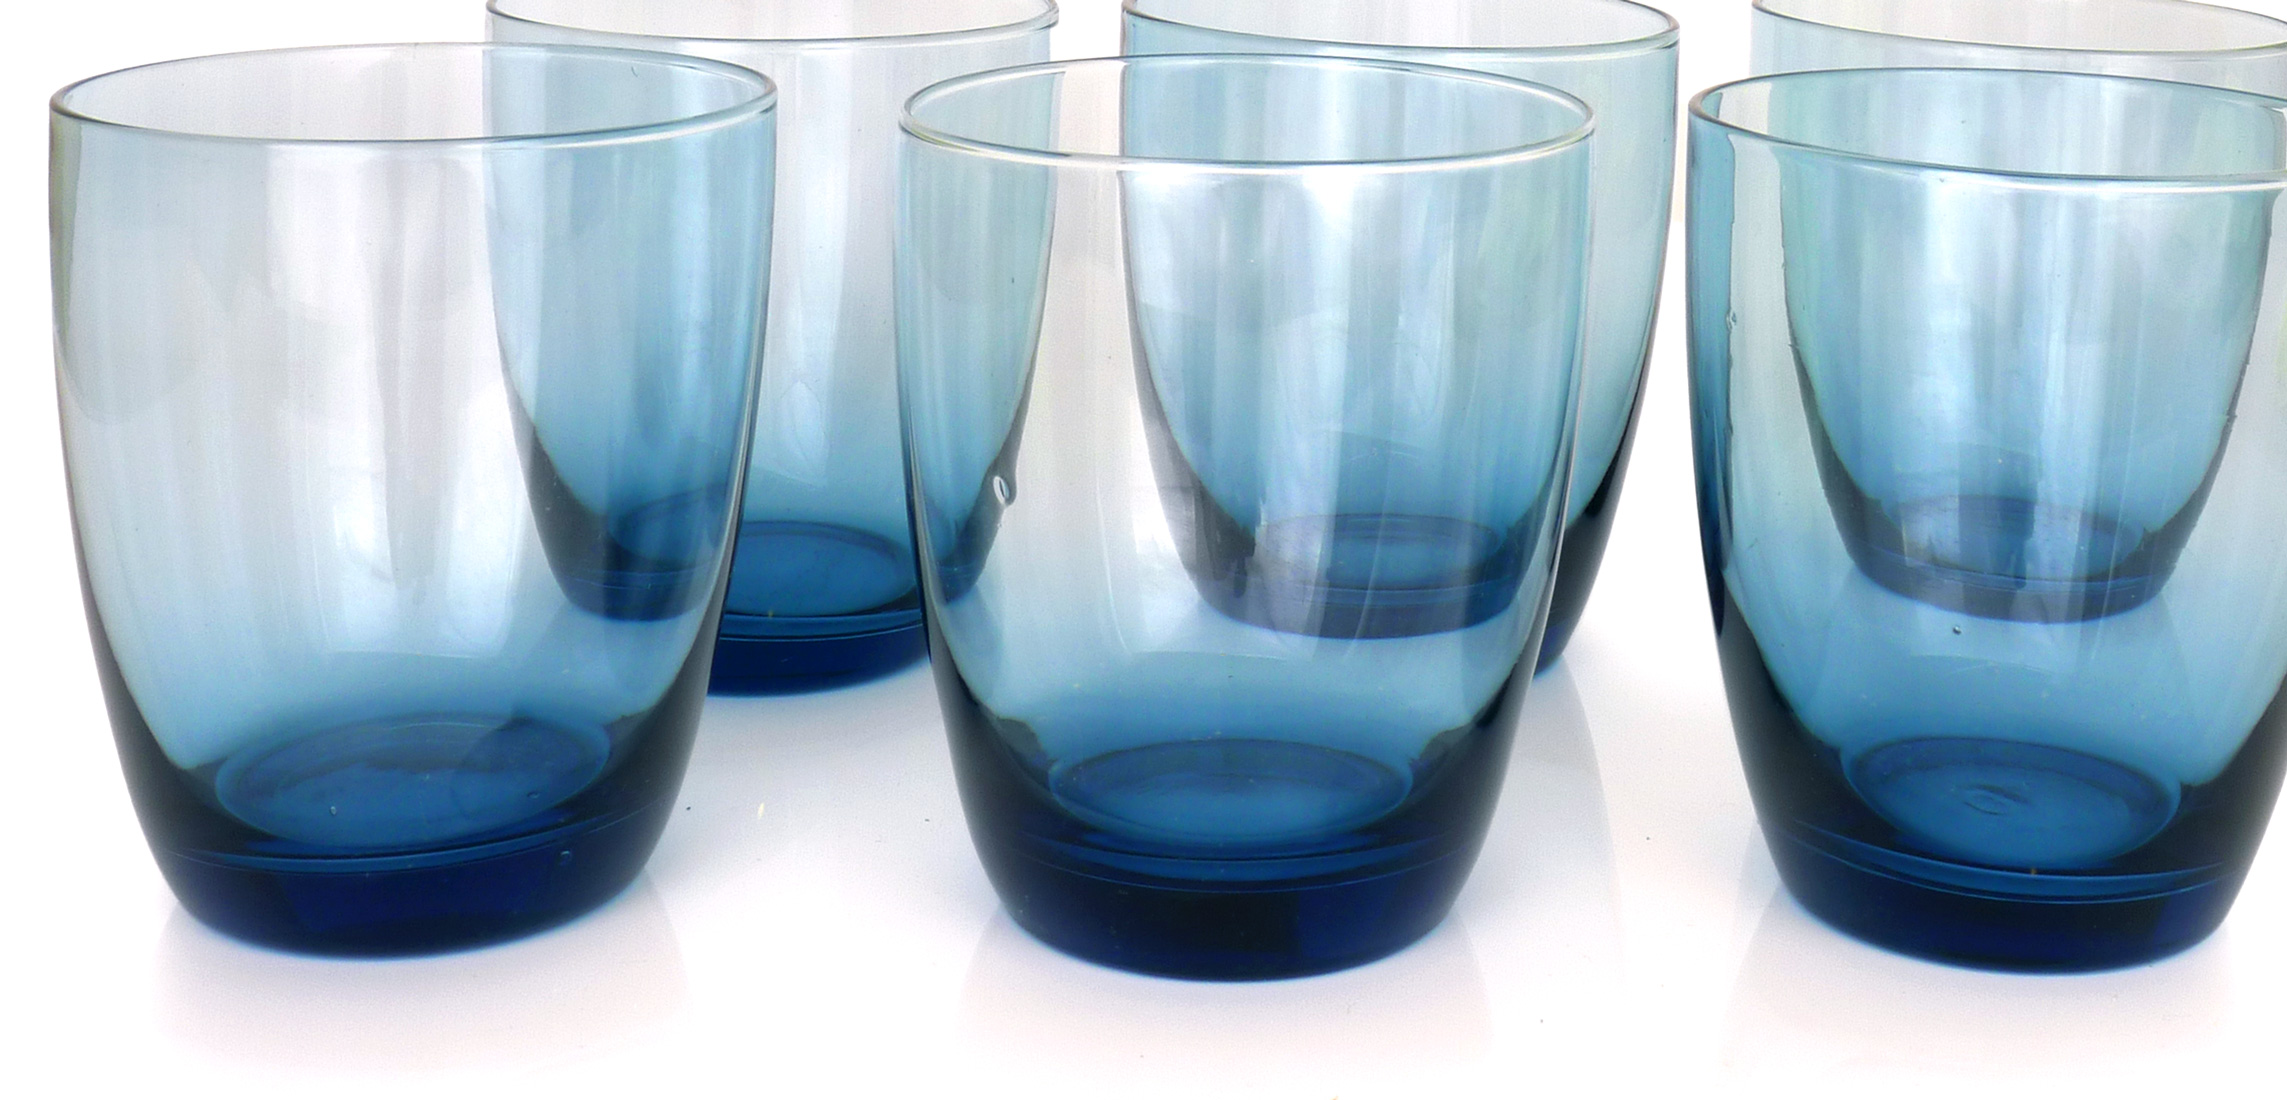 Image of 12-Oz Tumblers, Blue, Set of 6